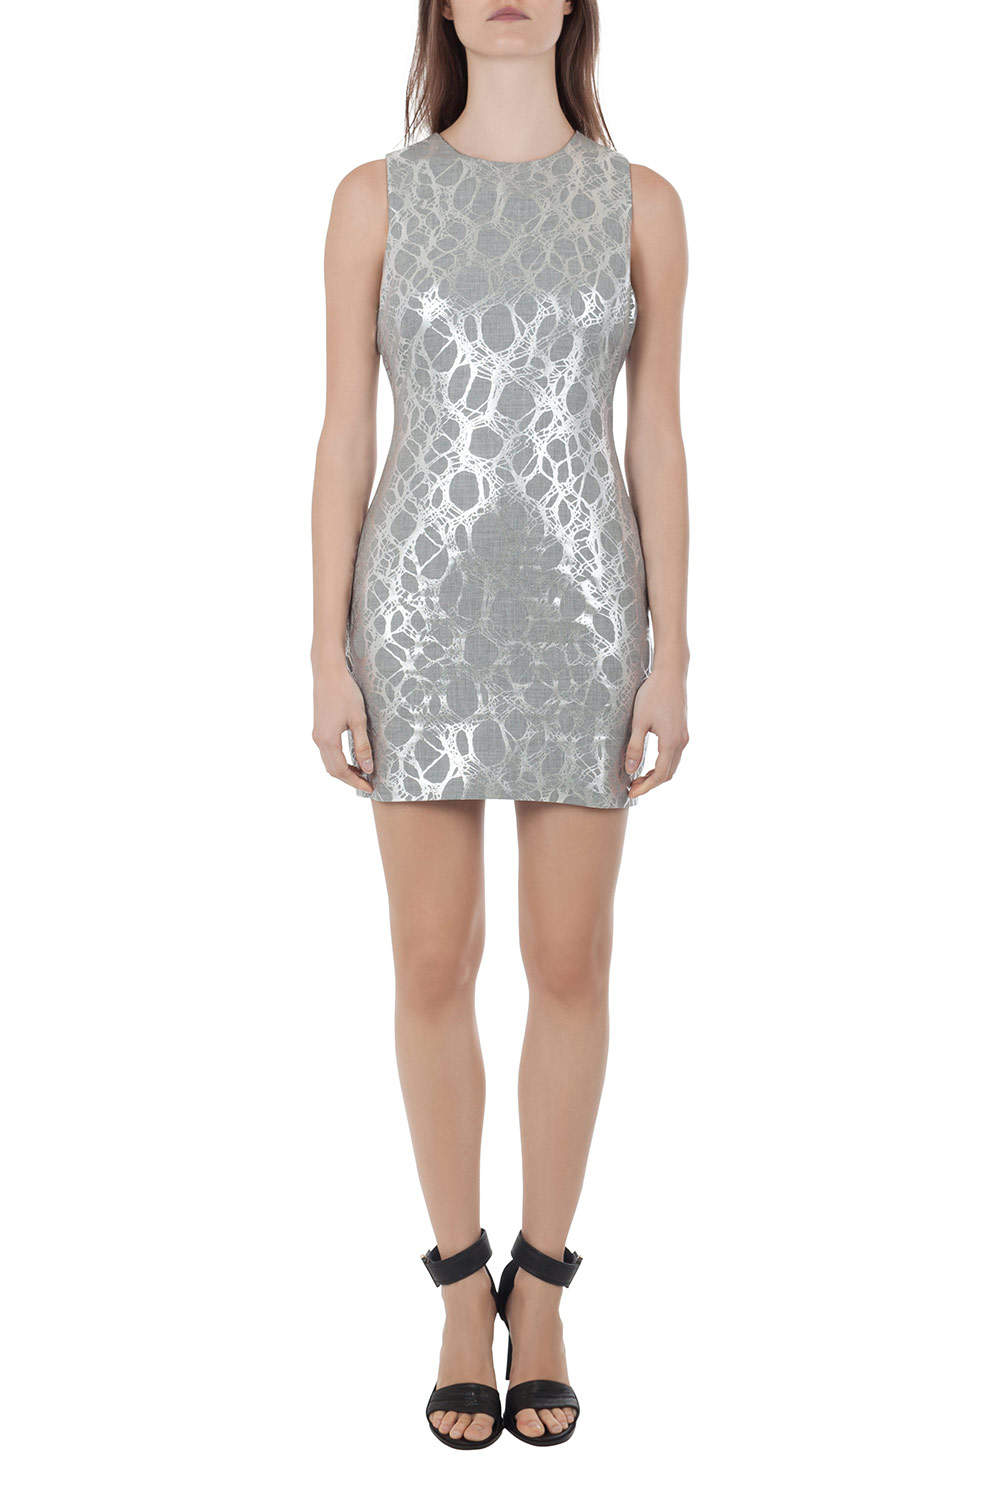 Elizabeth and James Heather Grey and Silver Foil Print Sleeveless Nadia Sheath Dress M